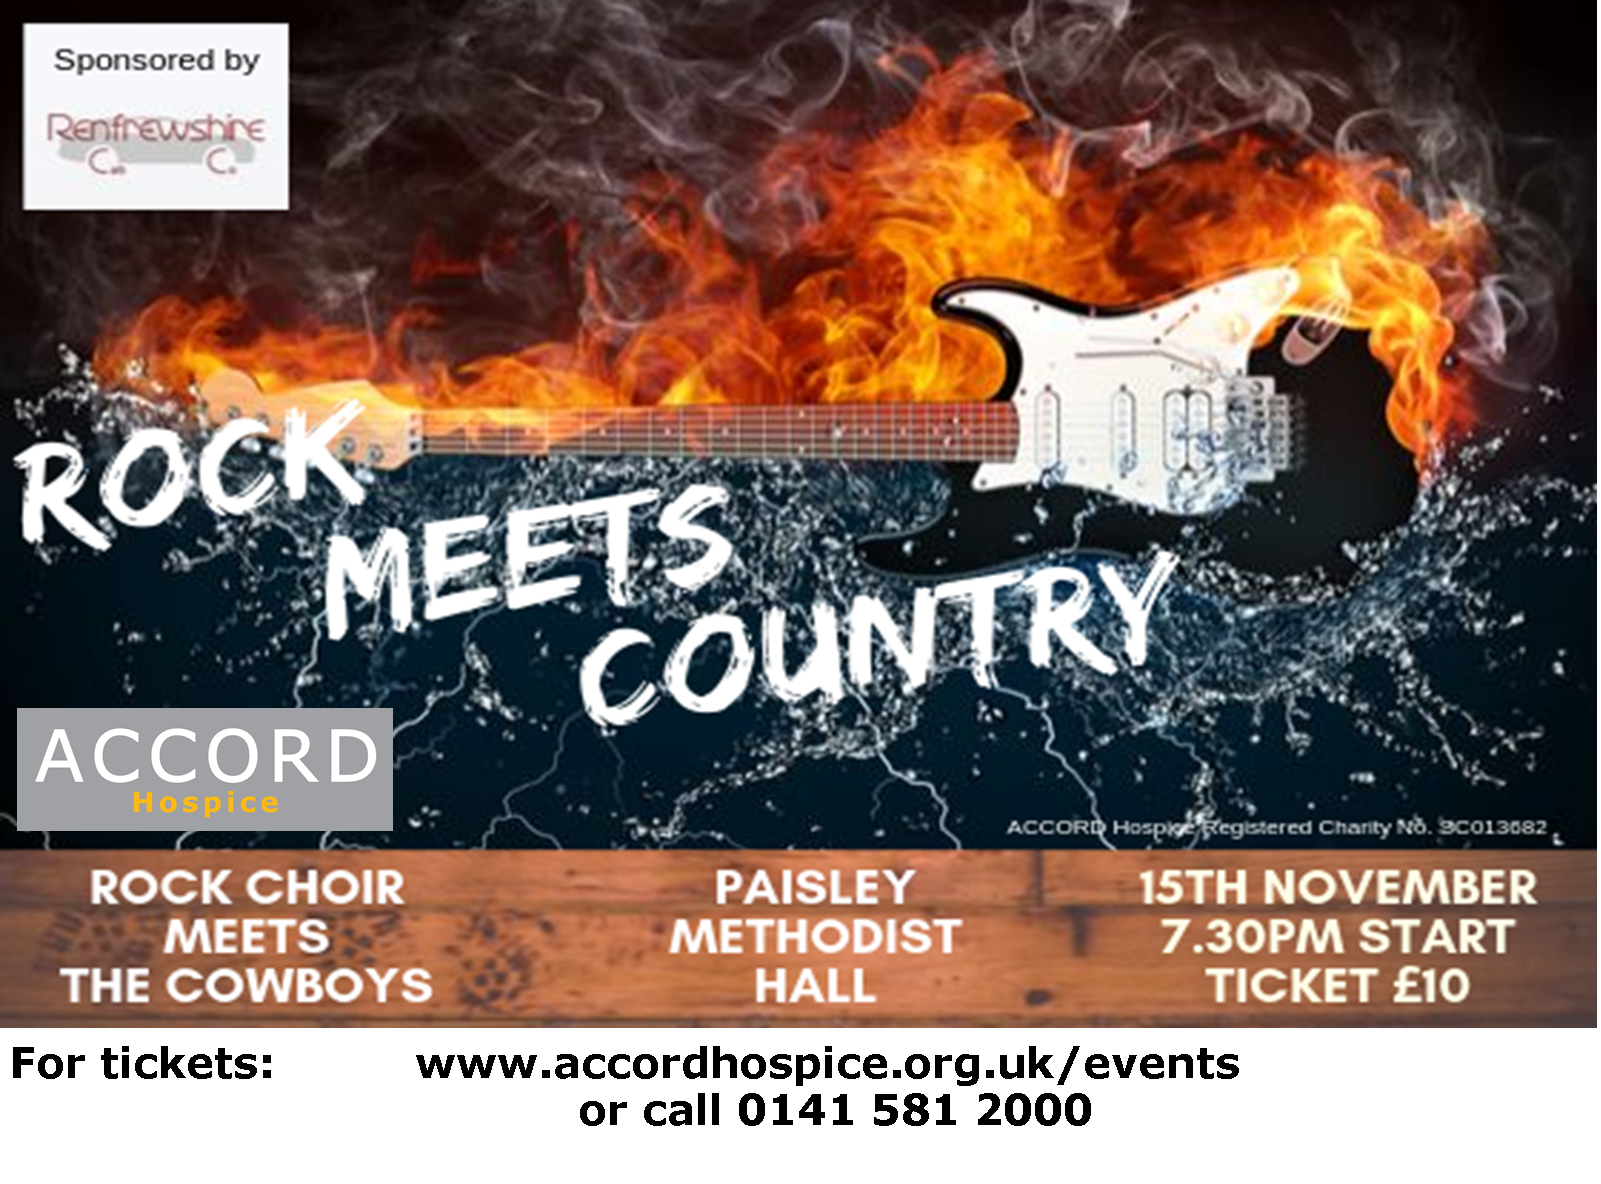 Rock Meets Country in Aid of ACCORD Hospice